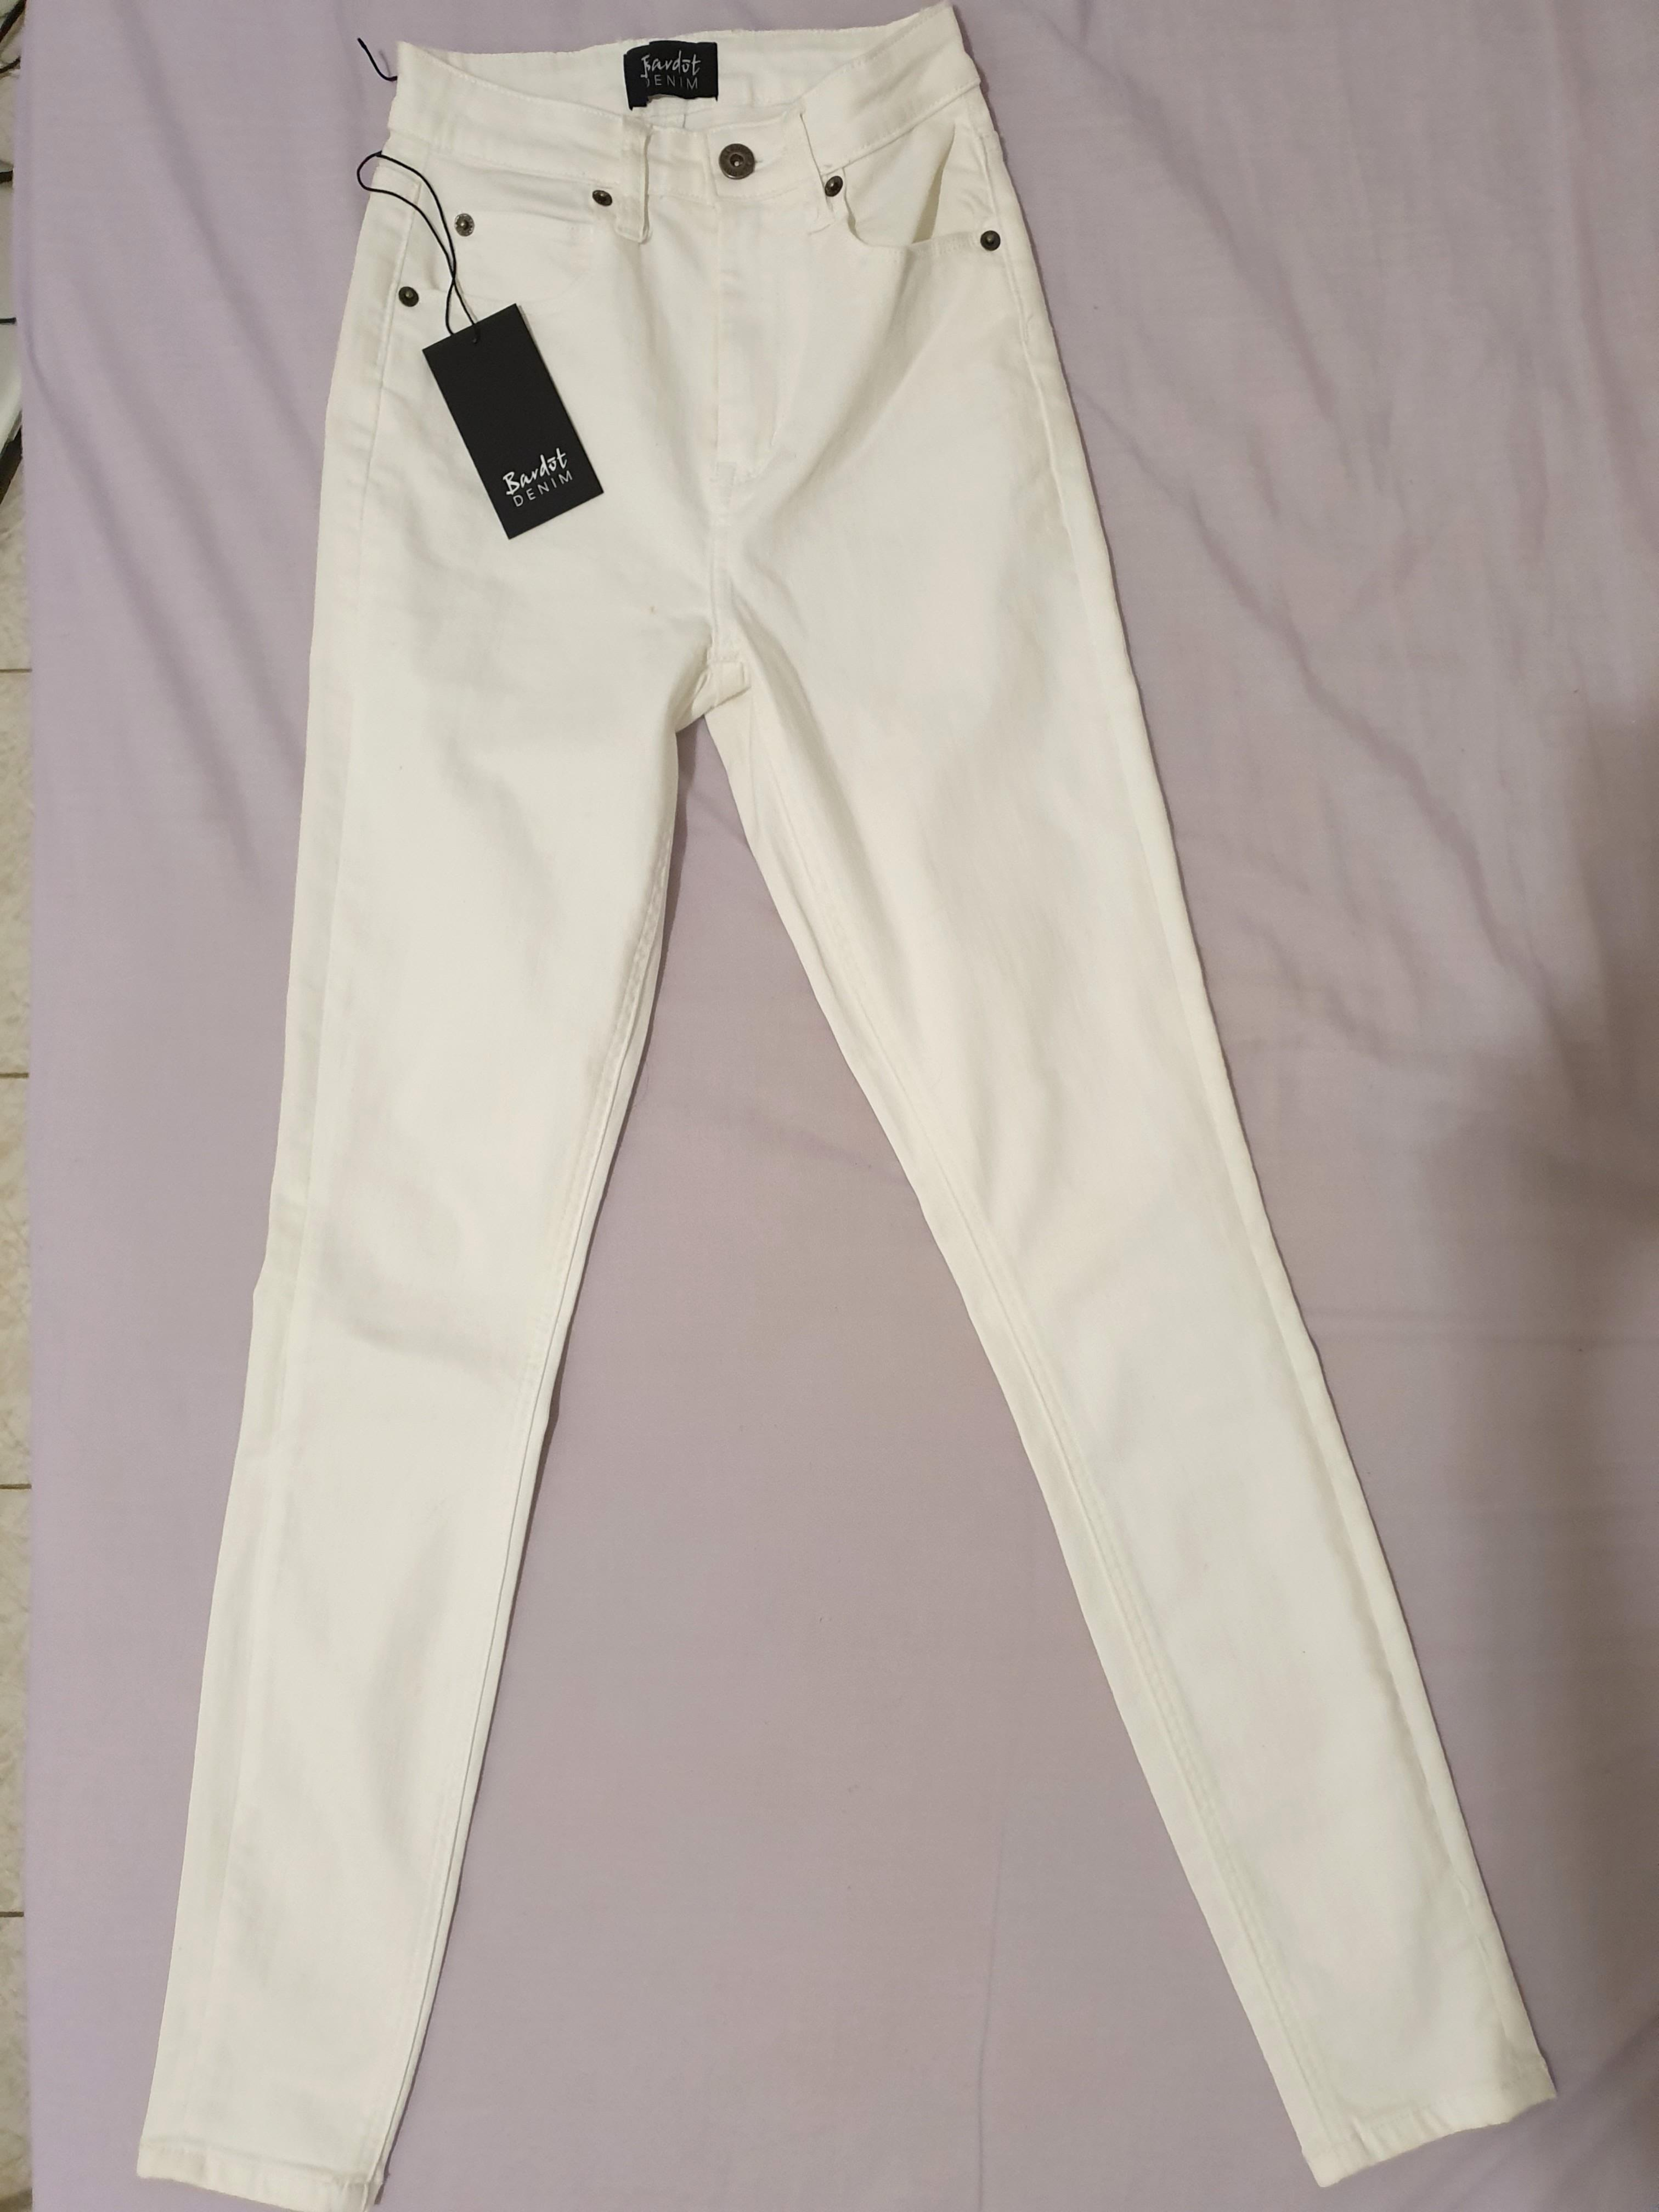 BRAND NEW WITH TAGS High Waisted White Bardot Jeans